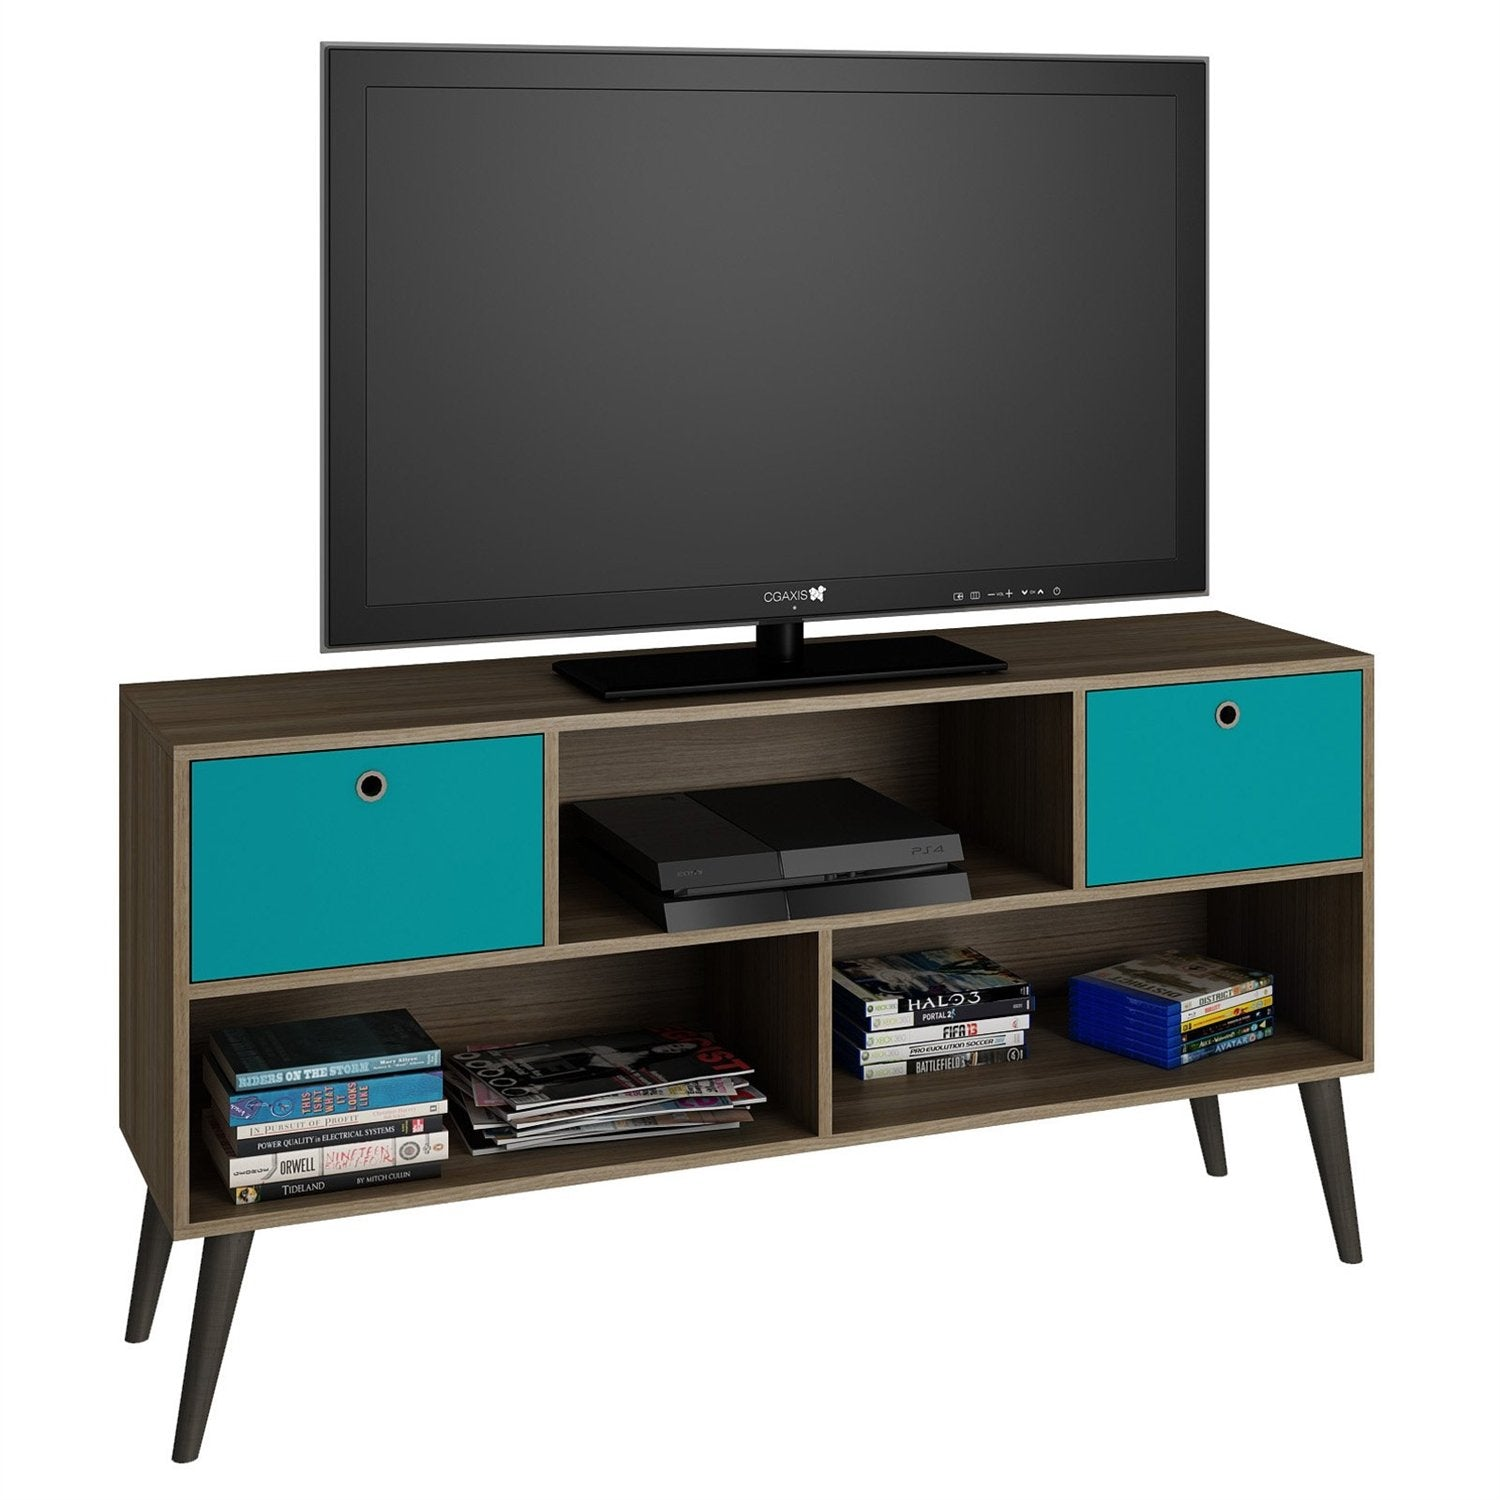 Modern Mid-Century TV Stand Entertainment Center in Oak Aqua Grey Wood Finish